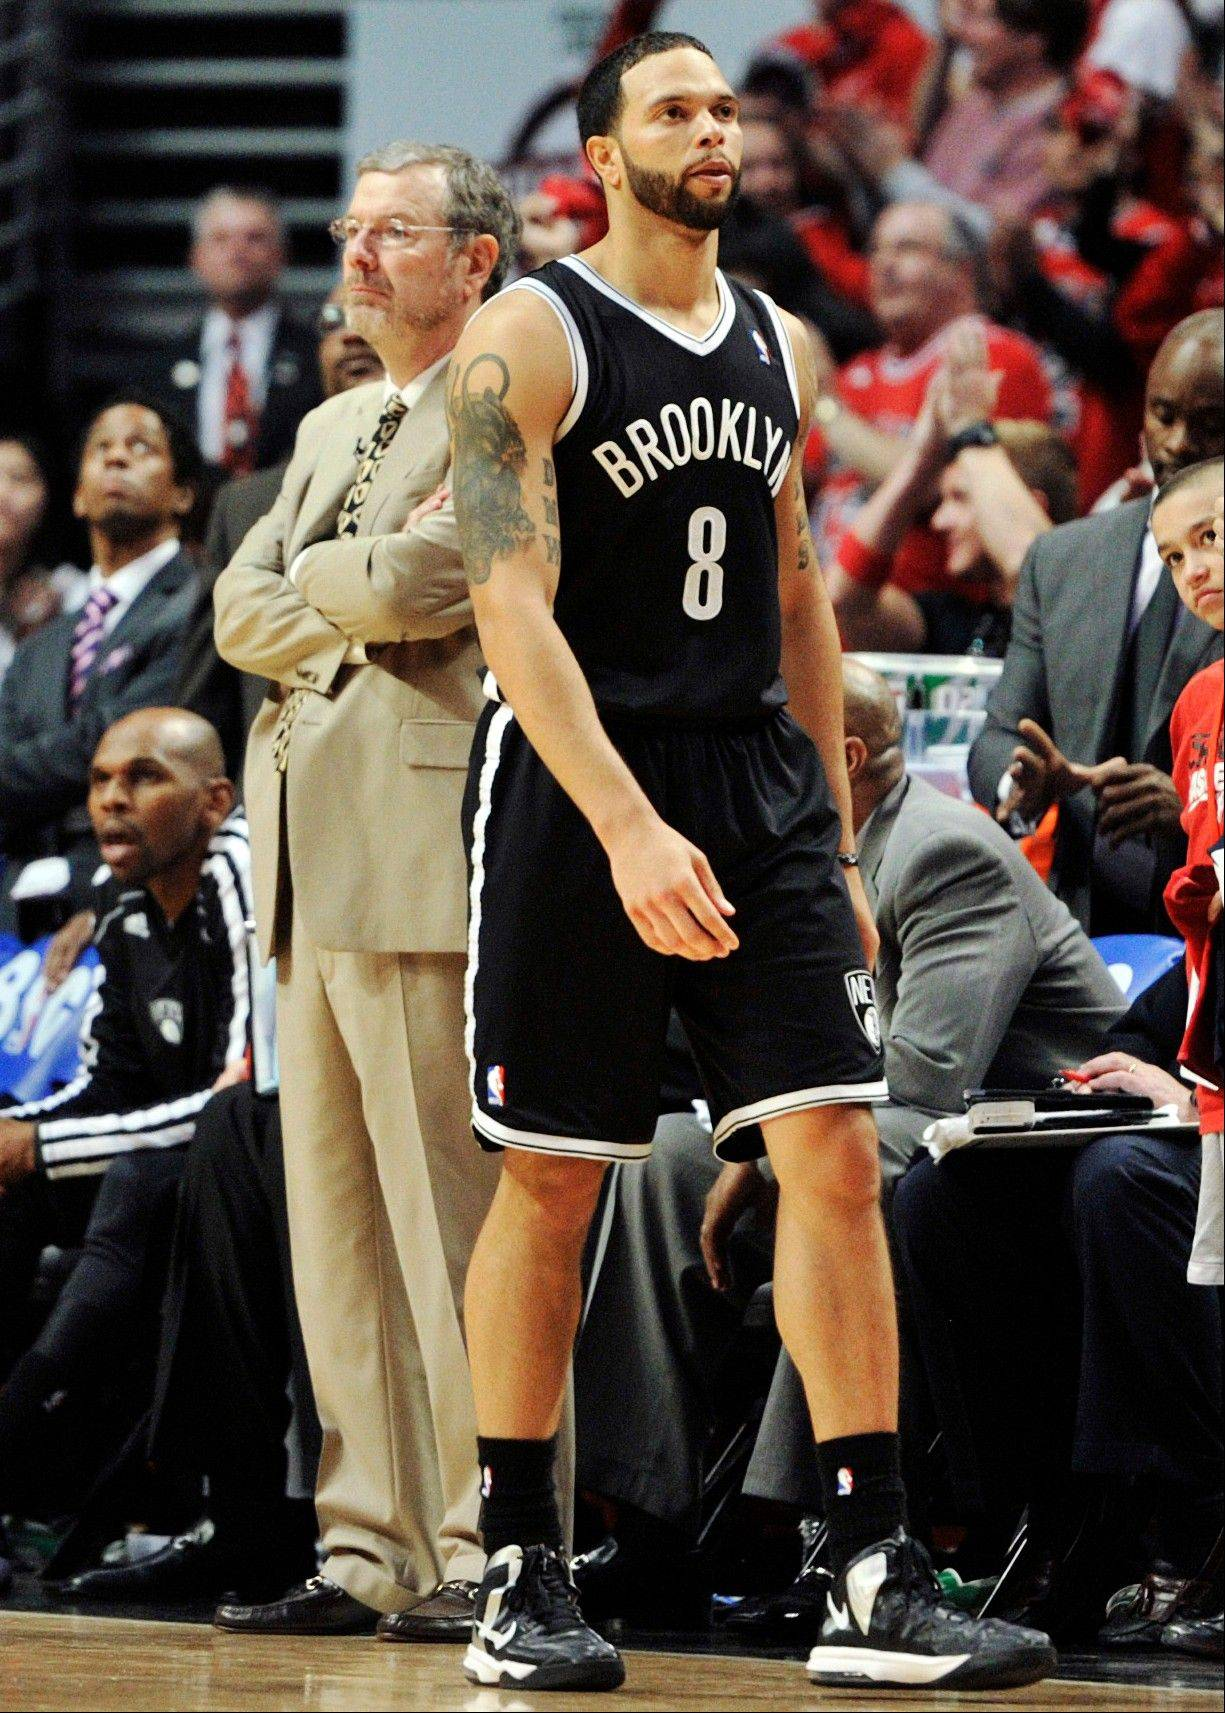 Brooklyn Nets head coach P.J. Carlesimo, rear left, stands on the court as Nets' Deron Williams (8) walks past the bench in the closing seconds during the third overtime in Game 4 of their first-round NBA basketball playoff series against the Chicago Bulls on Saturday, April 27, 2013, in Chicago. The Bulls won 142-134 in three overtimes.